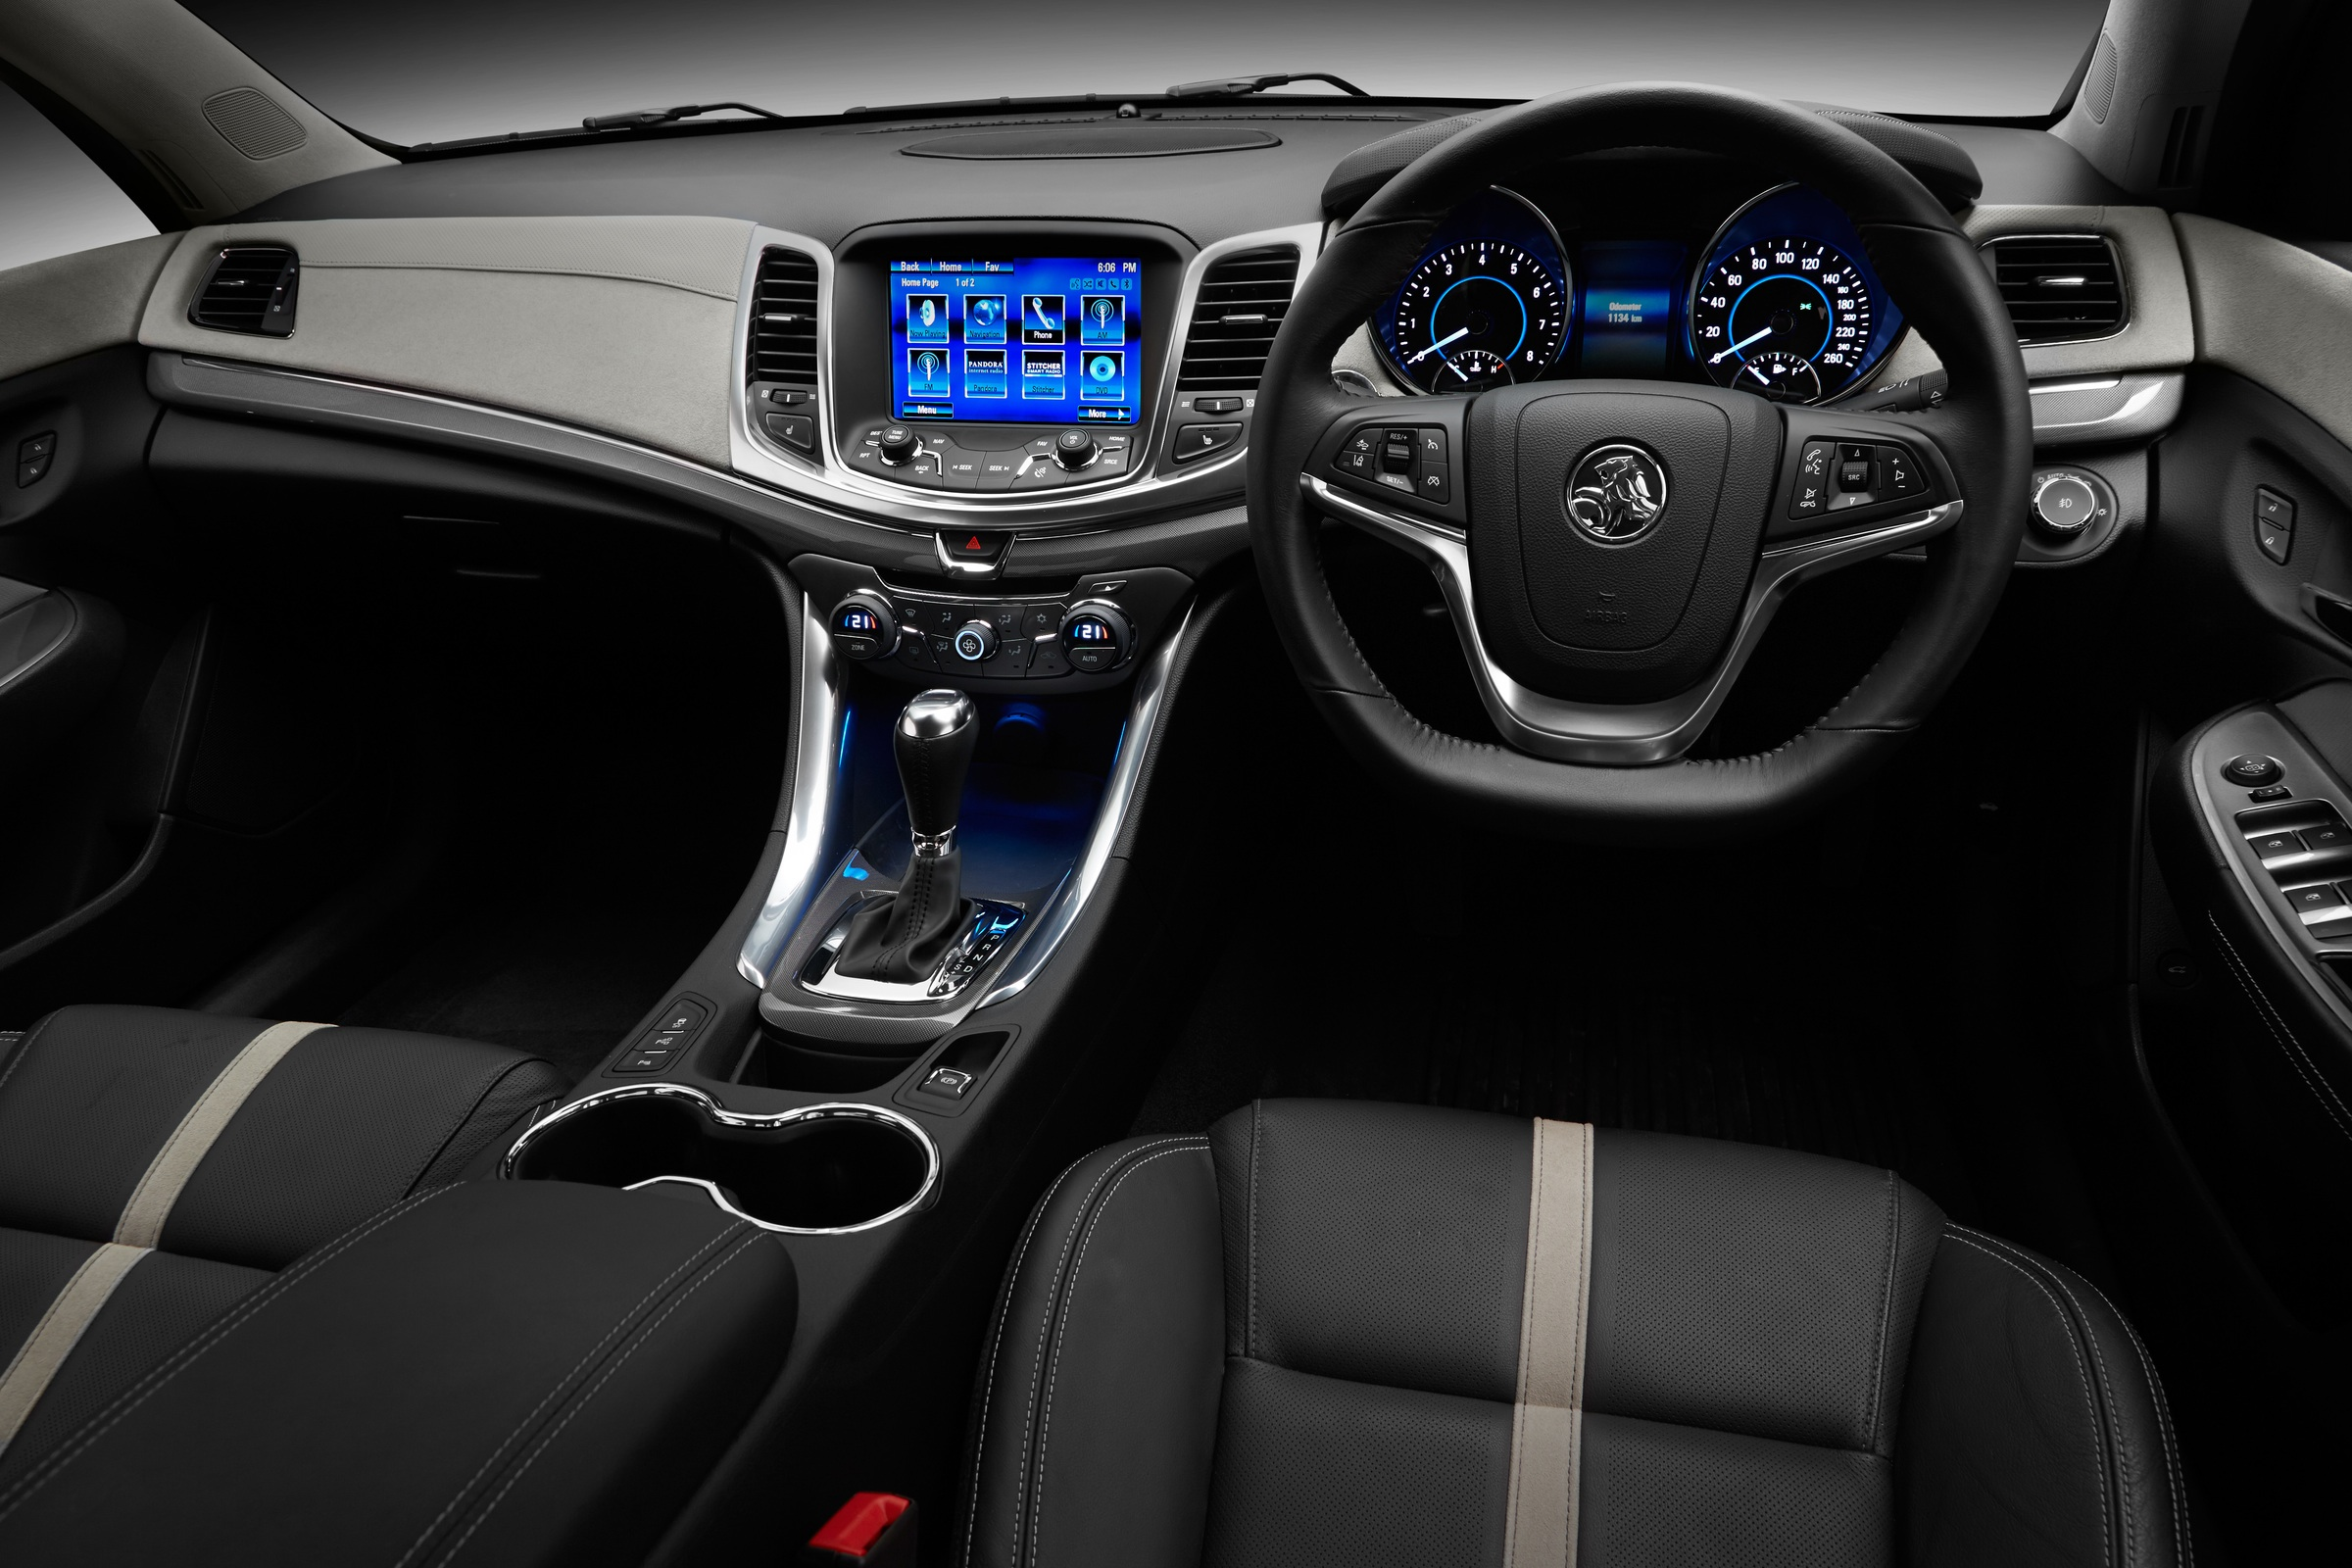 2014 holden vf commodore image collections hd cars wallpaper 100 reviews holden ssv sportwagon on margojoyo holden vf commodore pricing and specifications photos 1 of vanachro Image collections